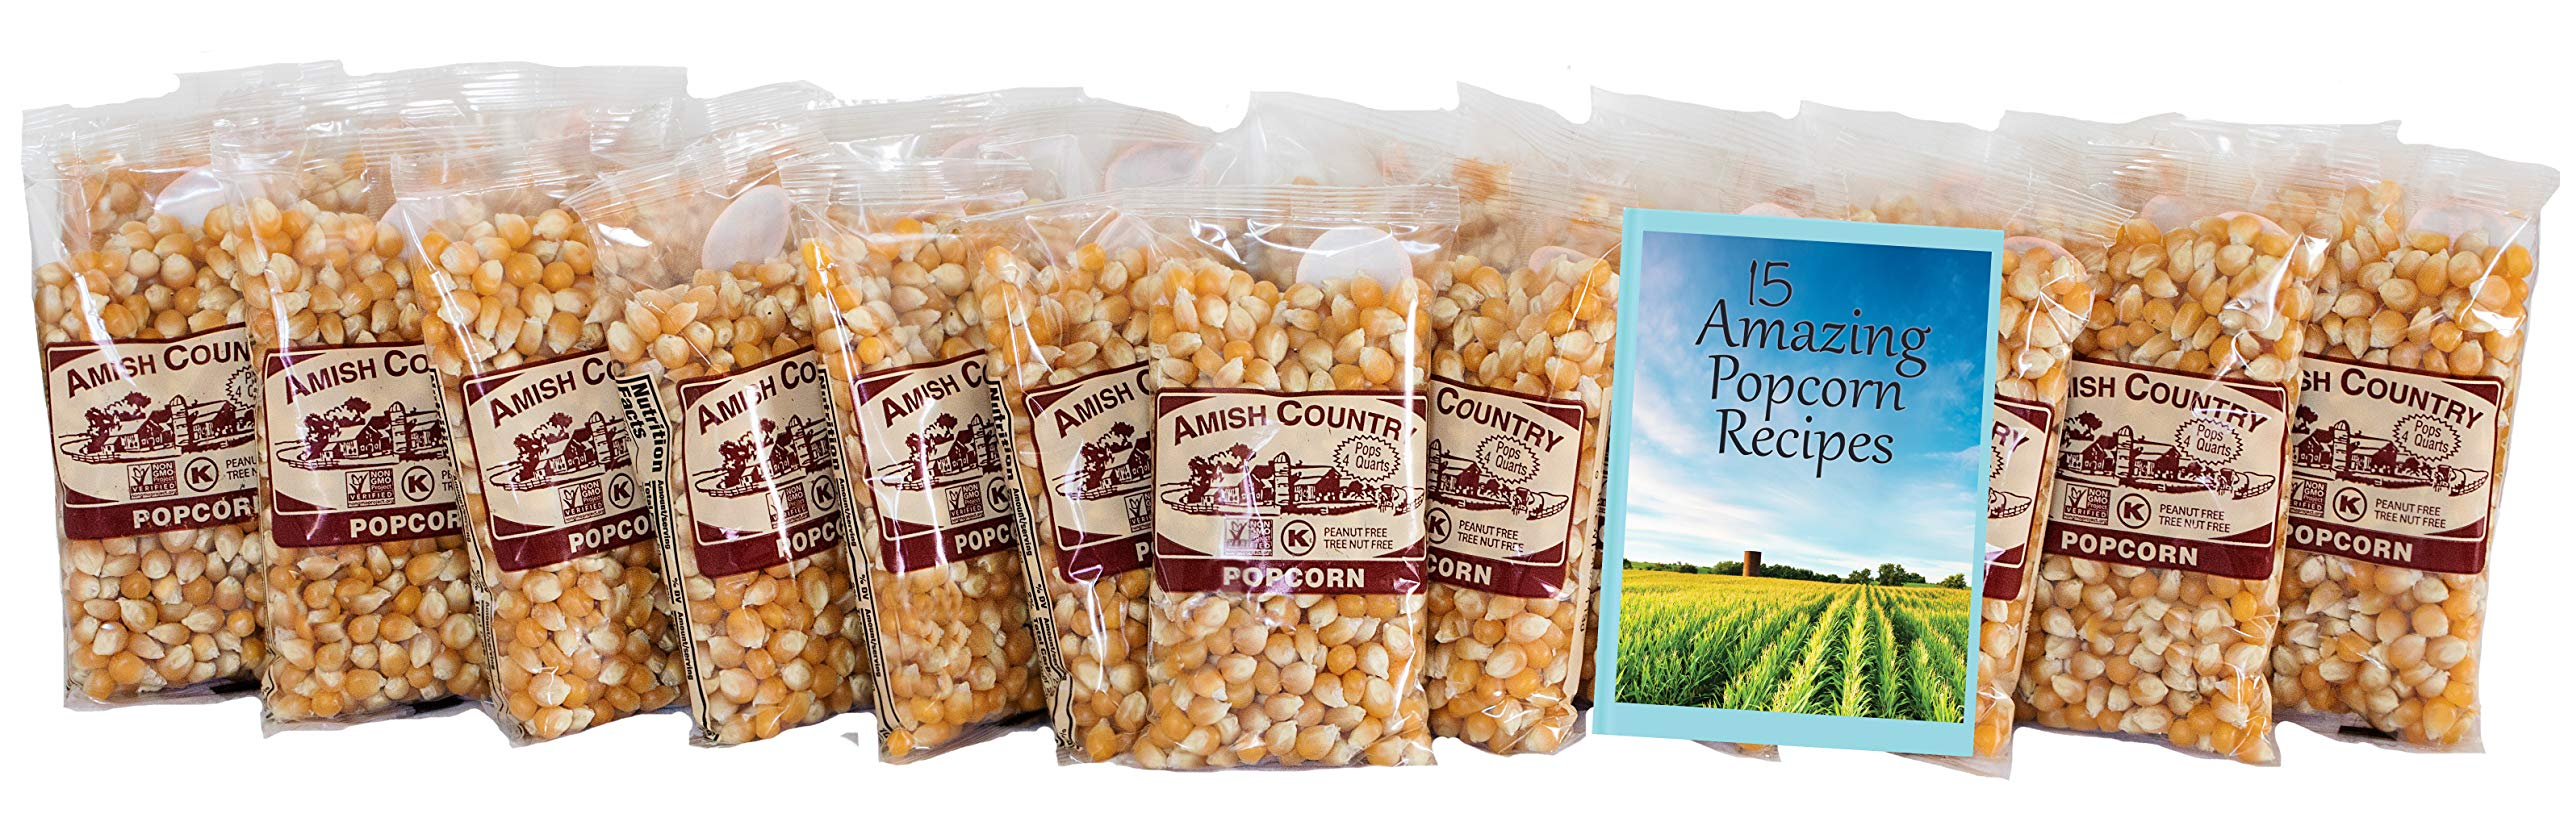 Amish Country Popcorn - Mushroom Popcorn (4 Ounce - 24 Pack) Bags - Old Fashioned, Non GMO, and Gluten Free - with Recipe Guide by Amish Country Popcorn (Image #2)